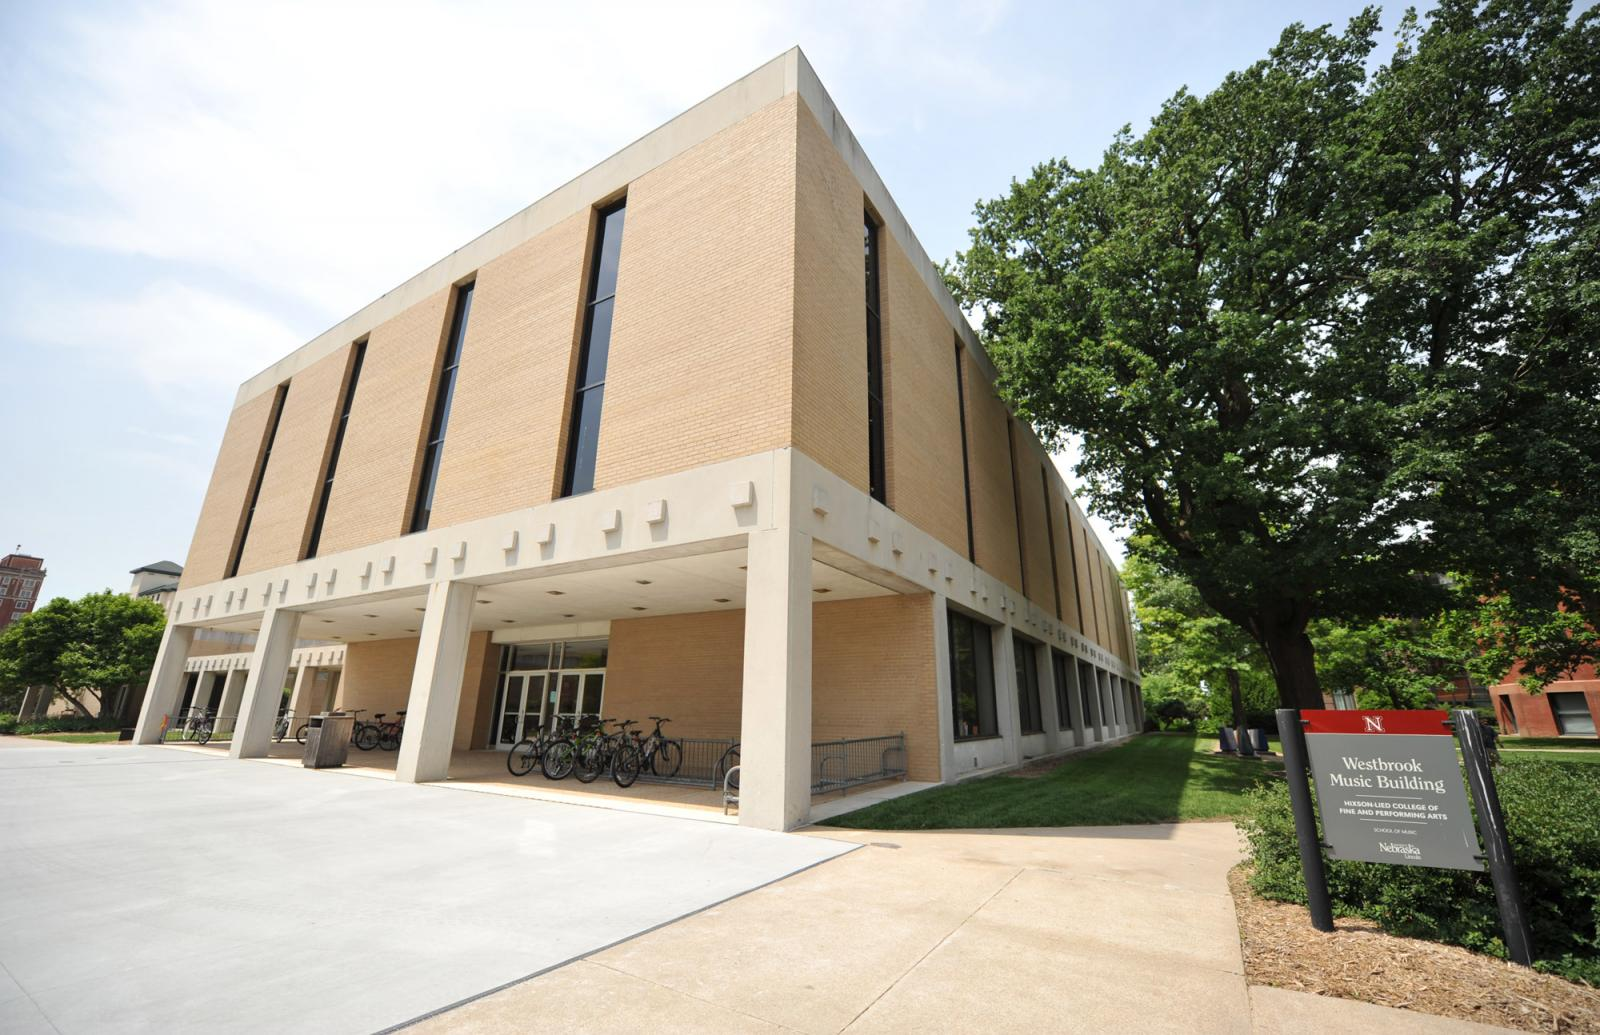 Westbrook Music Building Hixson Lied College Of Fine And